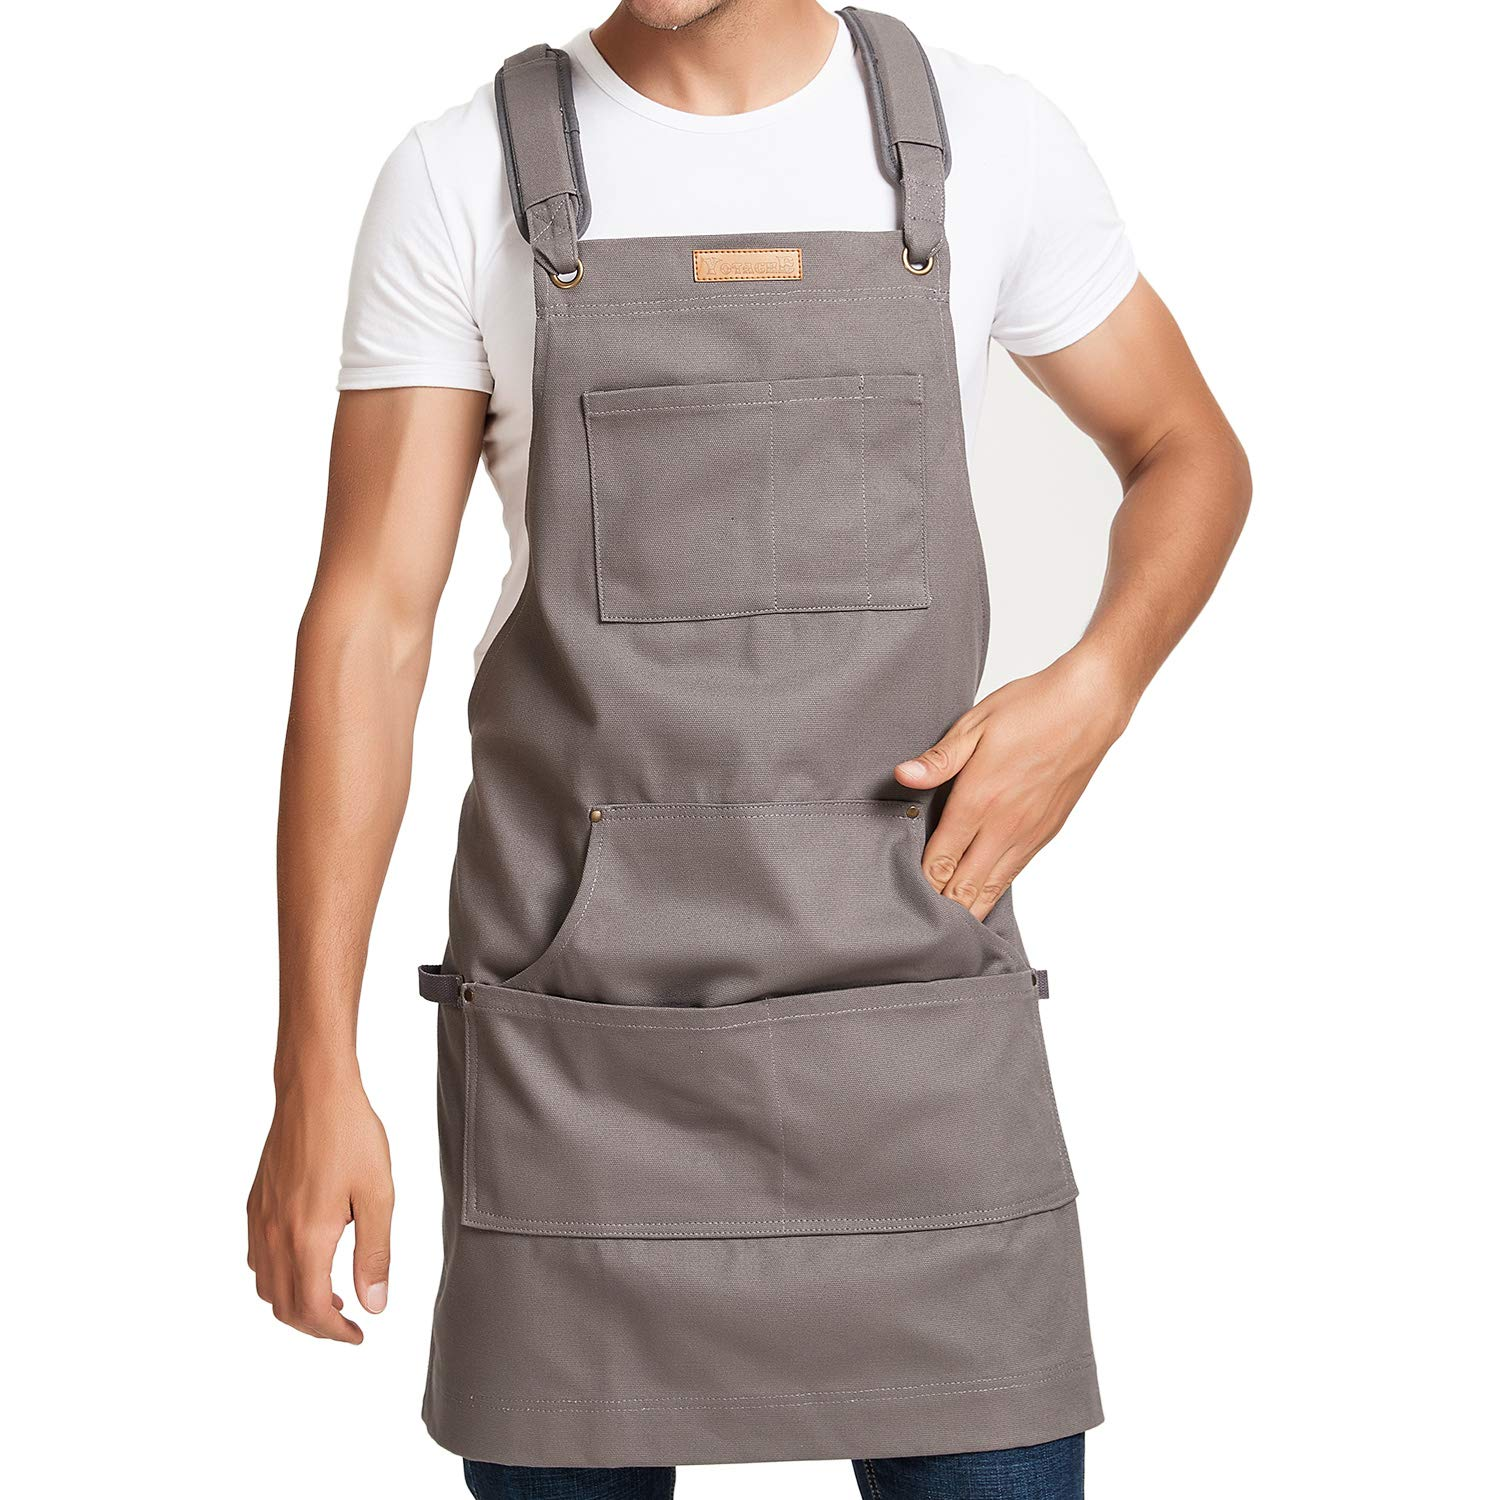 Woodworking Apron Professional Canvas Apron with Multi Pockets & Dual Hammer Loops & Cross-Back Straps, 16 oz Water Resistant Canvas Fully Adjustable Up to XXL for Men and Women